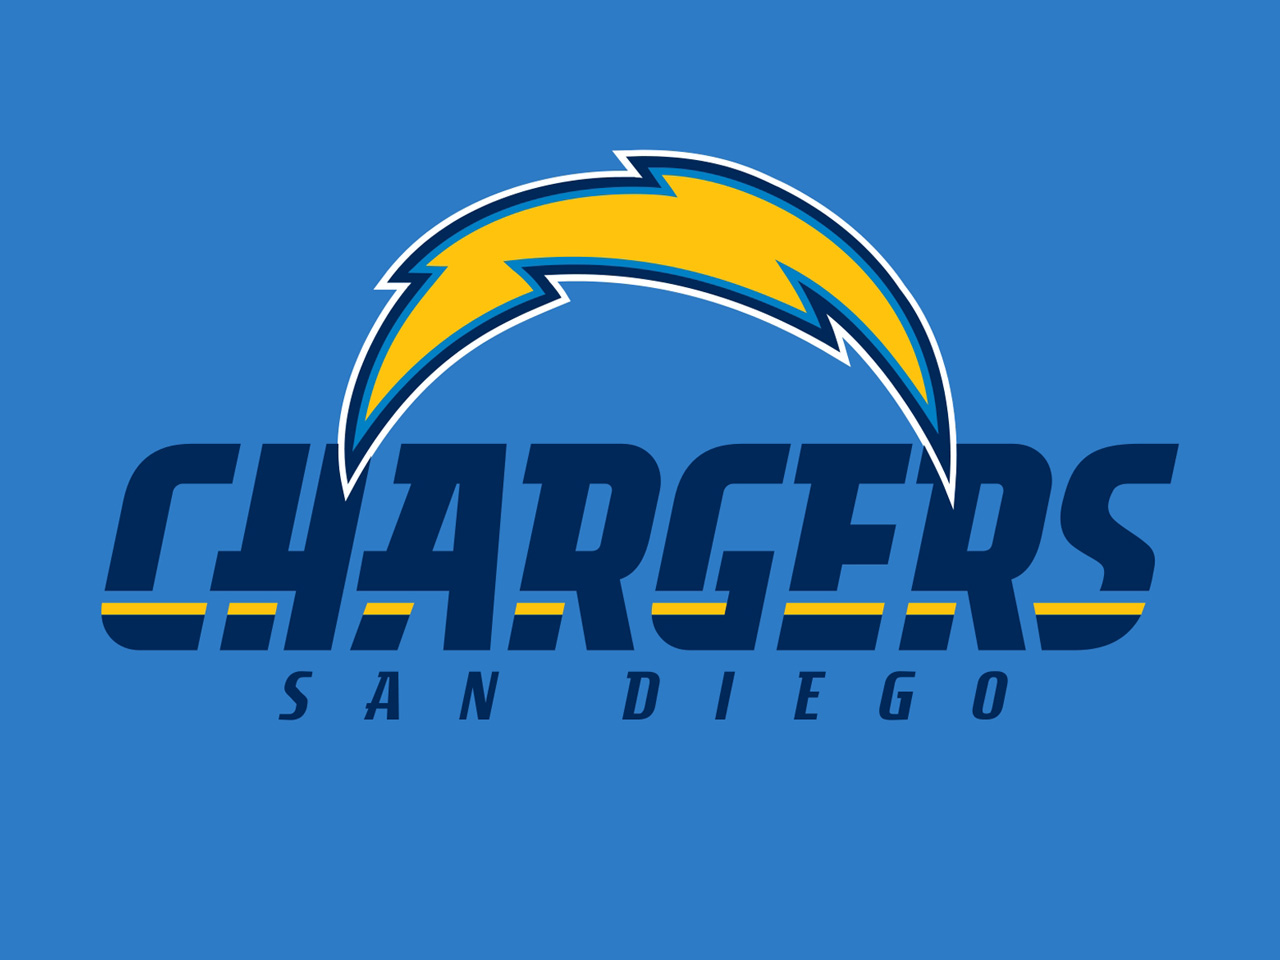 Chargers wallpaper 14775 1280x960 px hdwallsource chargers wallpaper 14775 voltagebd Images